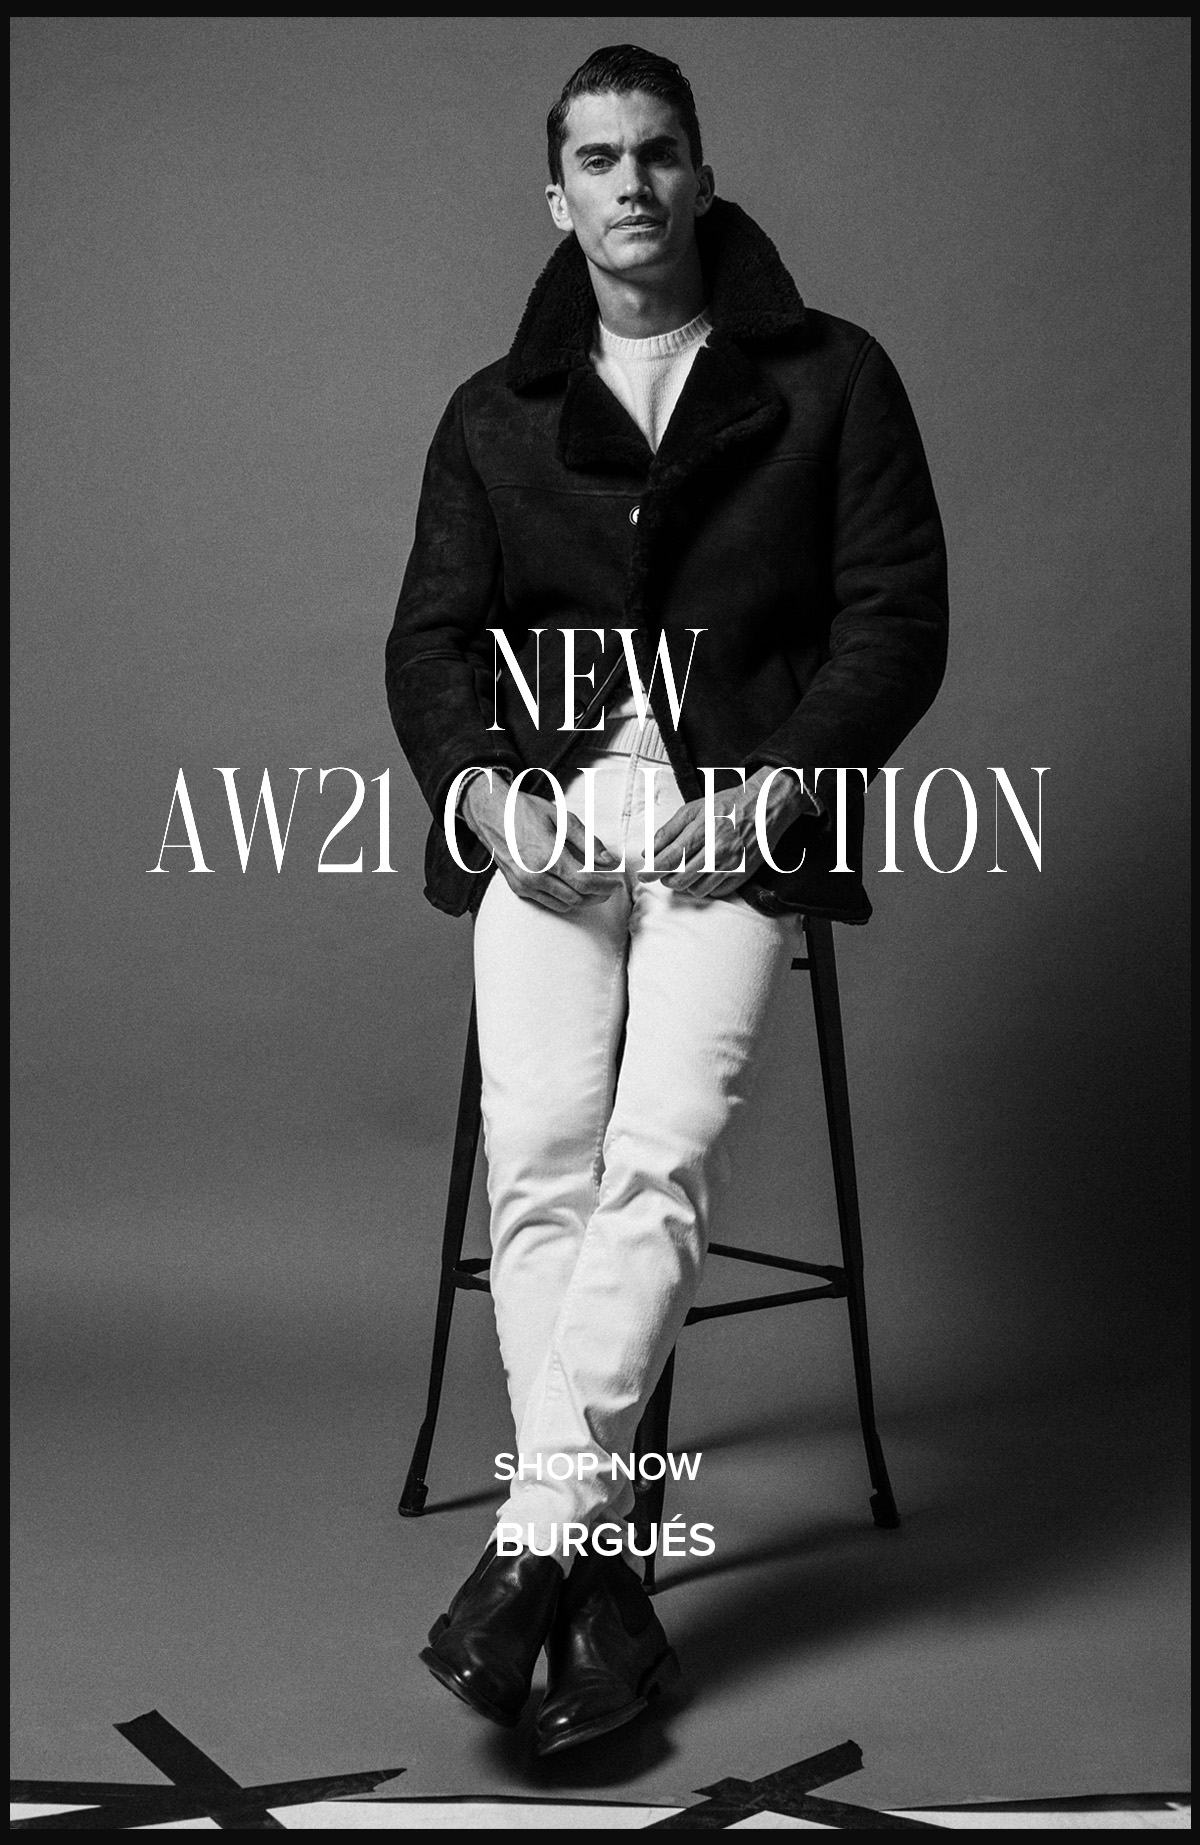 AW21 Collection